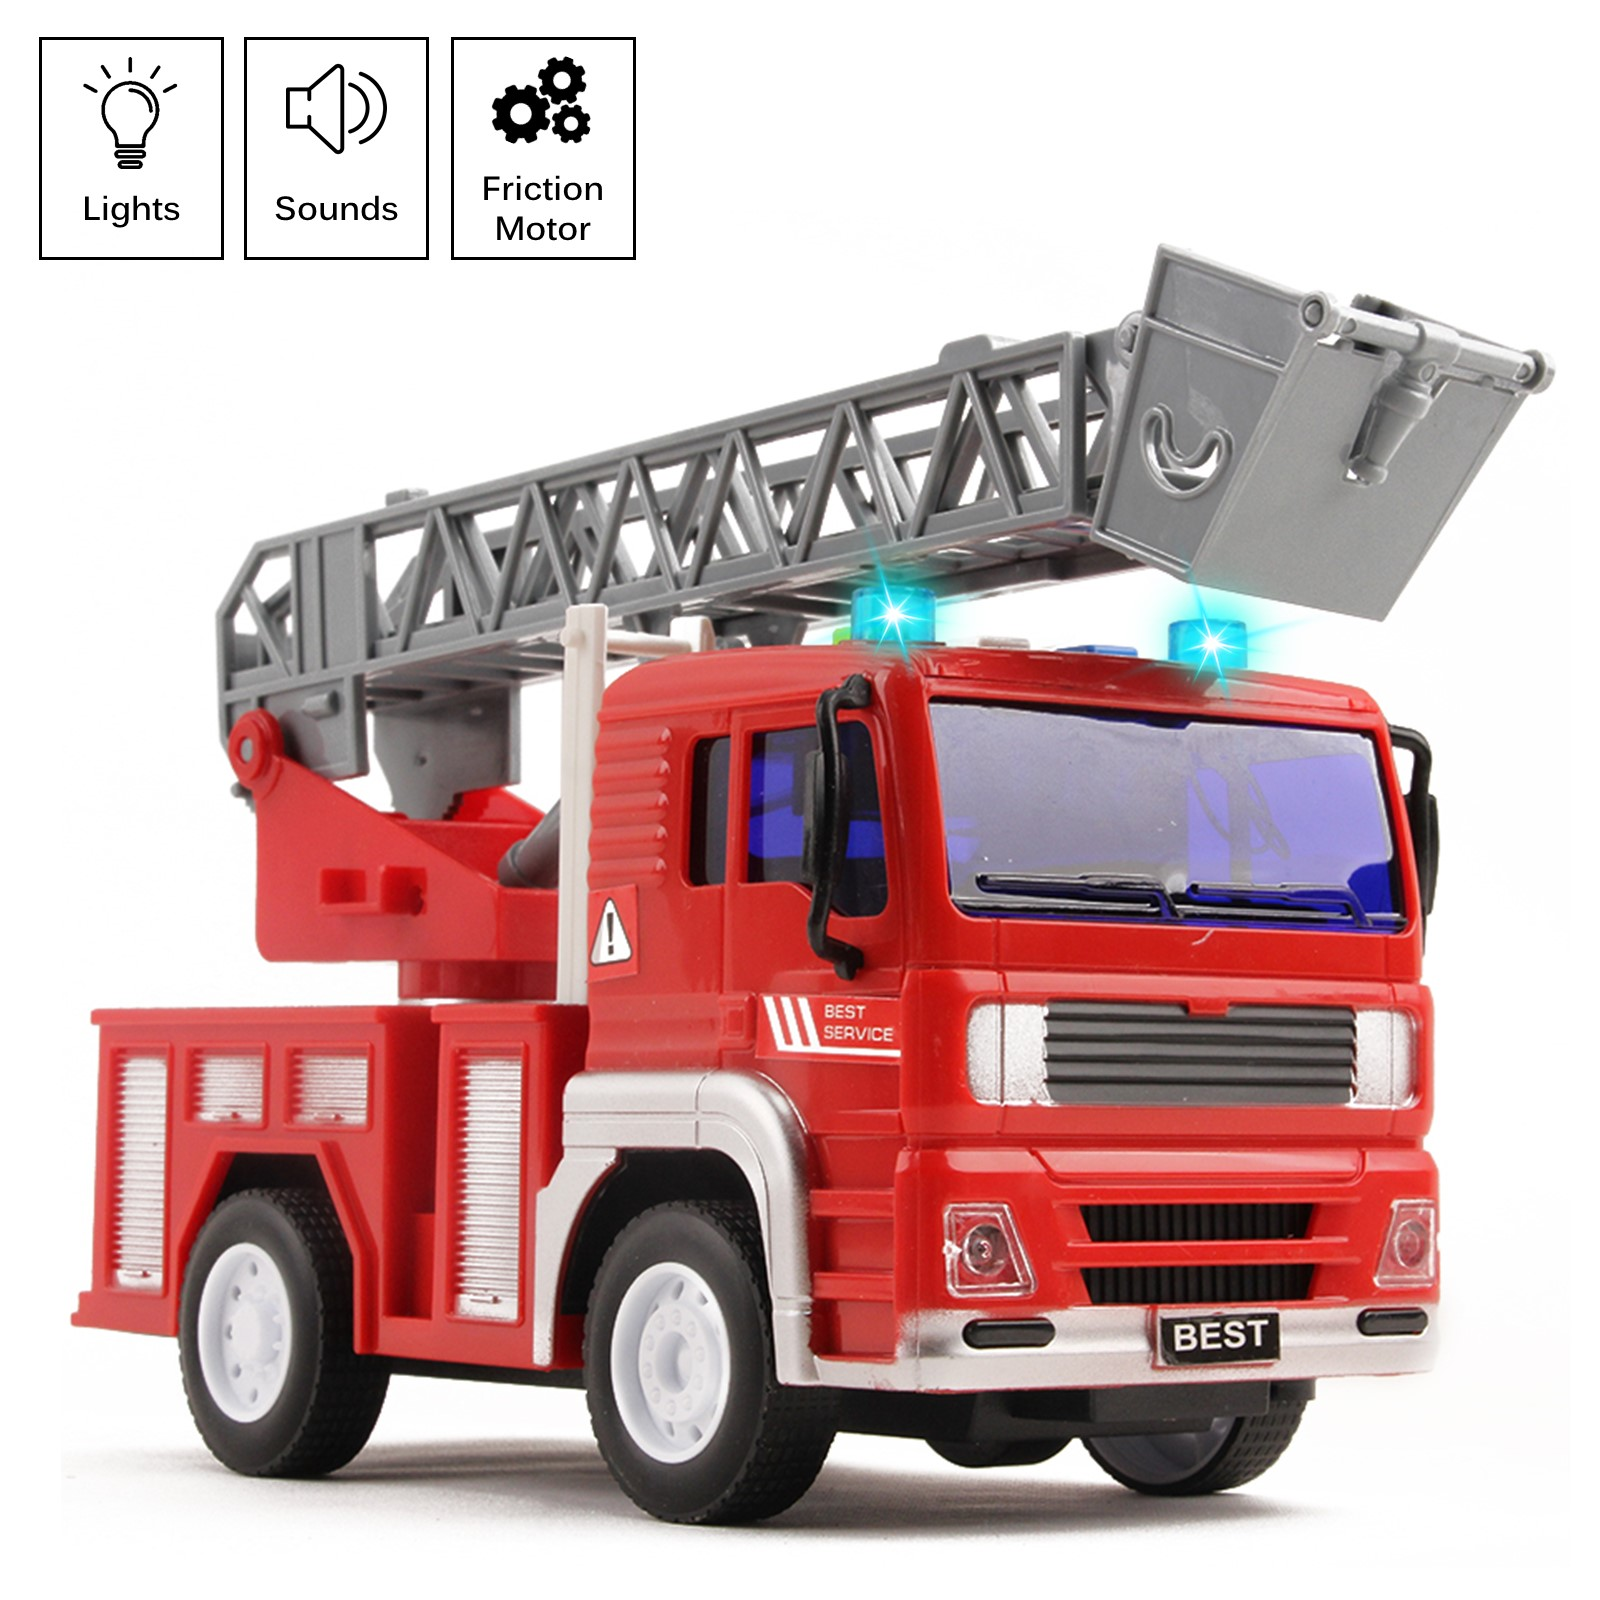 "Fire Truck Rescue With Lights And Sounds 12.5"" Extending Ladder 360 Rotation Friction Powered Toy Car Kids Push And Go Firetruck Engine Vehicle Pretend Play Great Gift For Children Boys Girls"